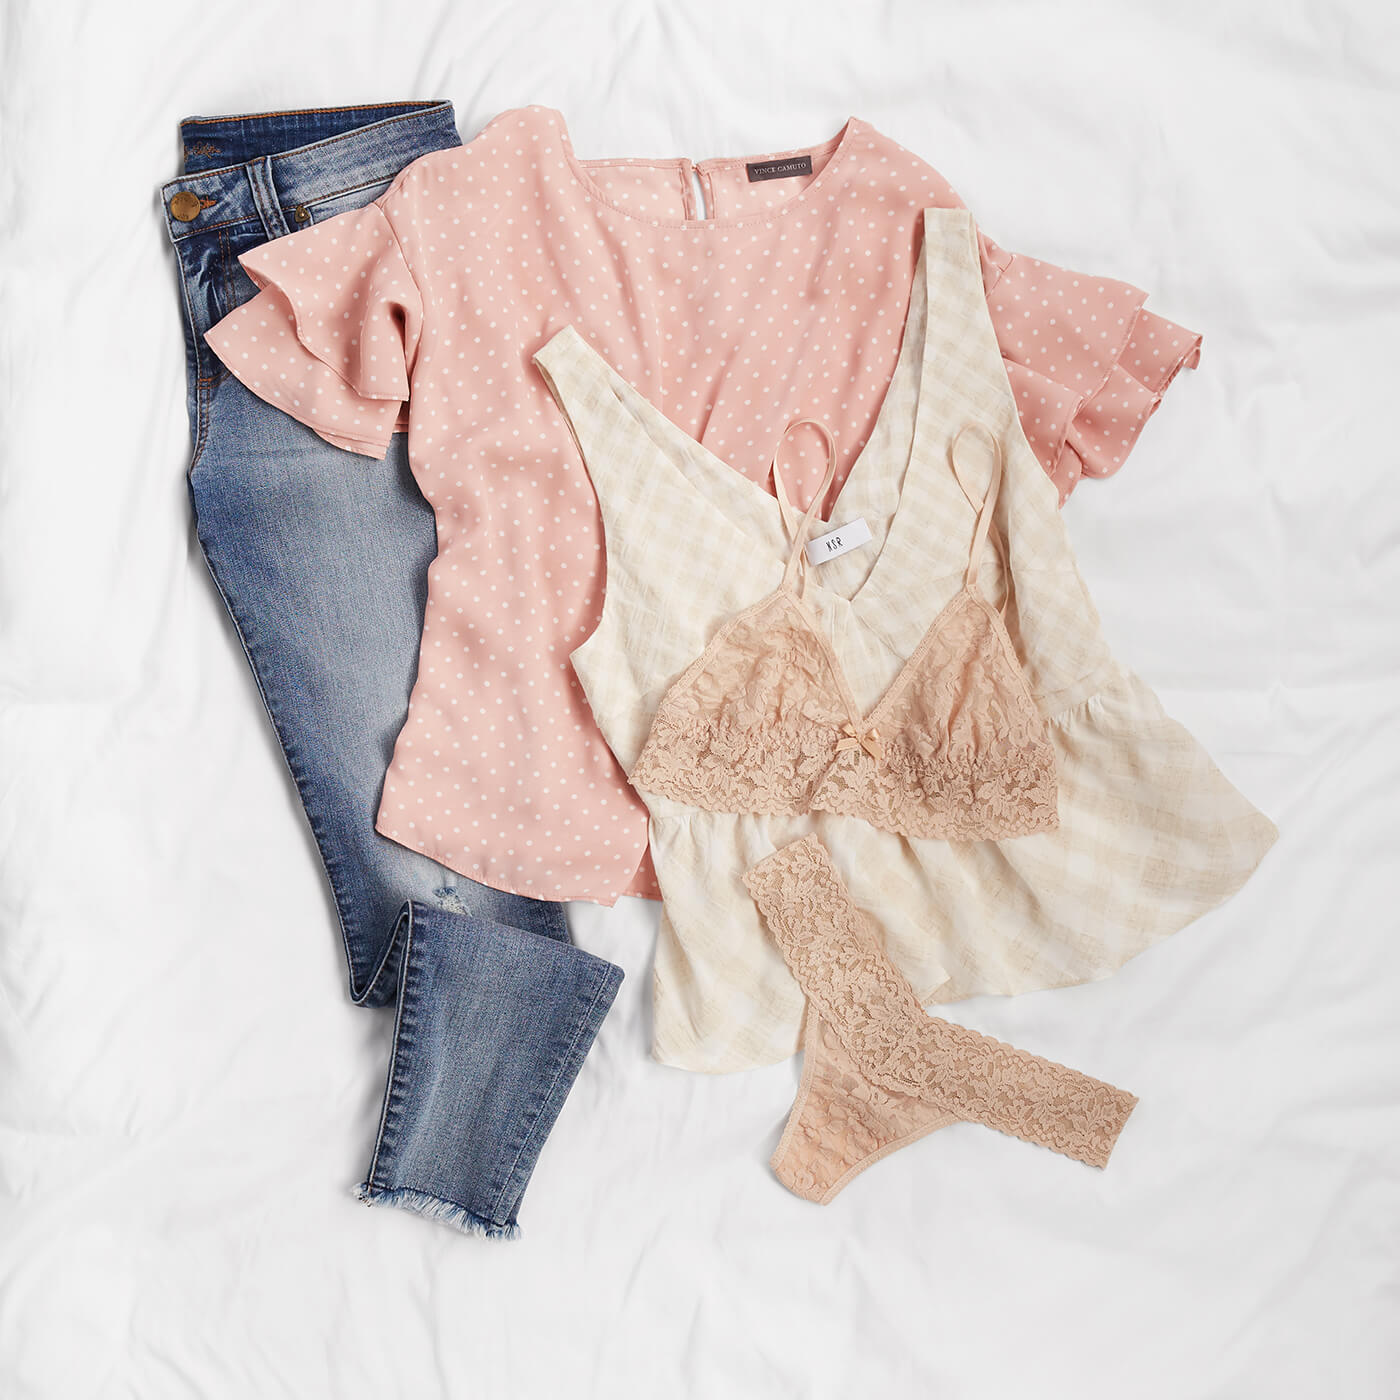 bras to wear with spaghetti strap tops